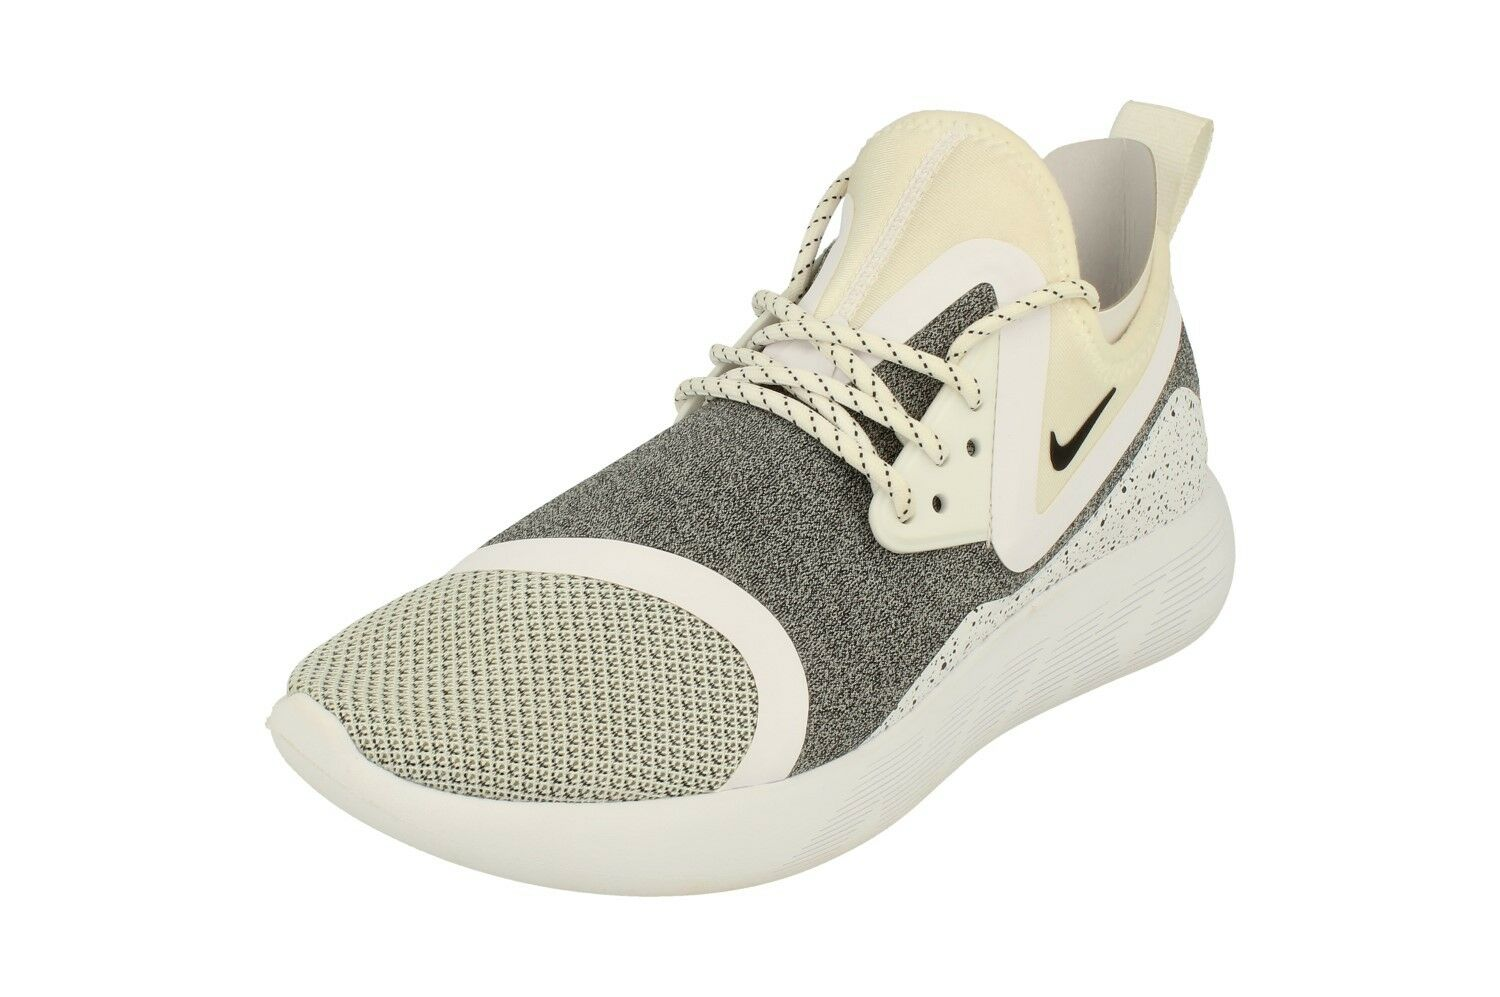 Nike Lunarcharge Essential Mens Running Trainers 923619 Sneakers shoes 101